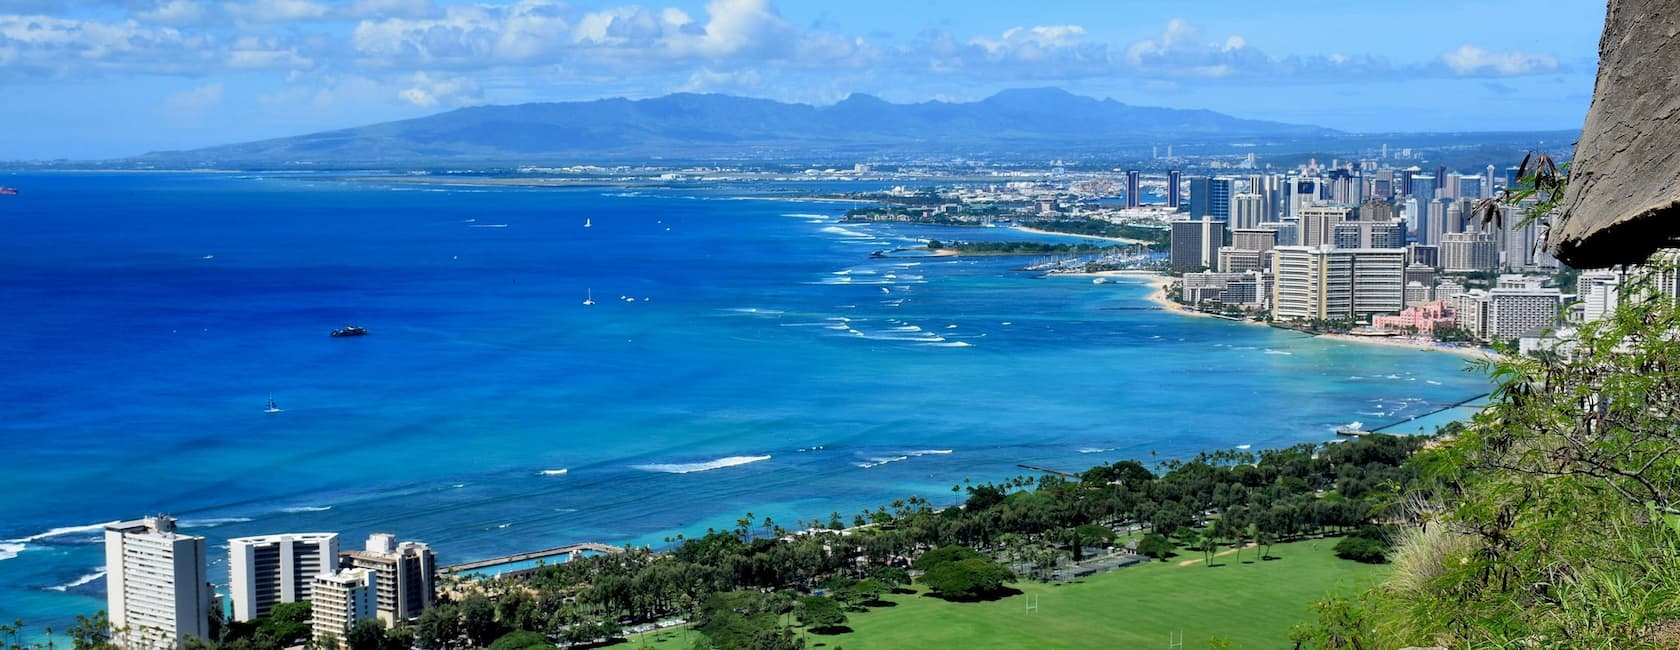 Vacation rentals in Ko Olina Beach